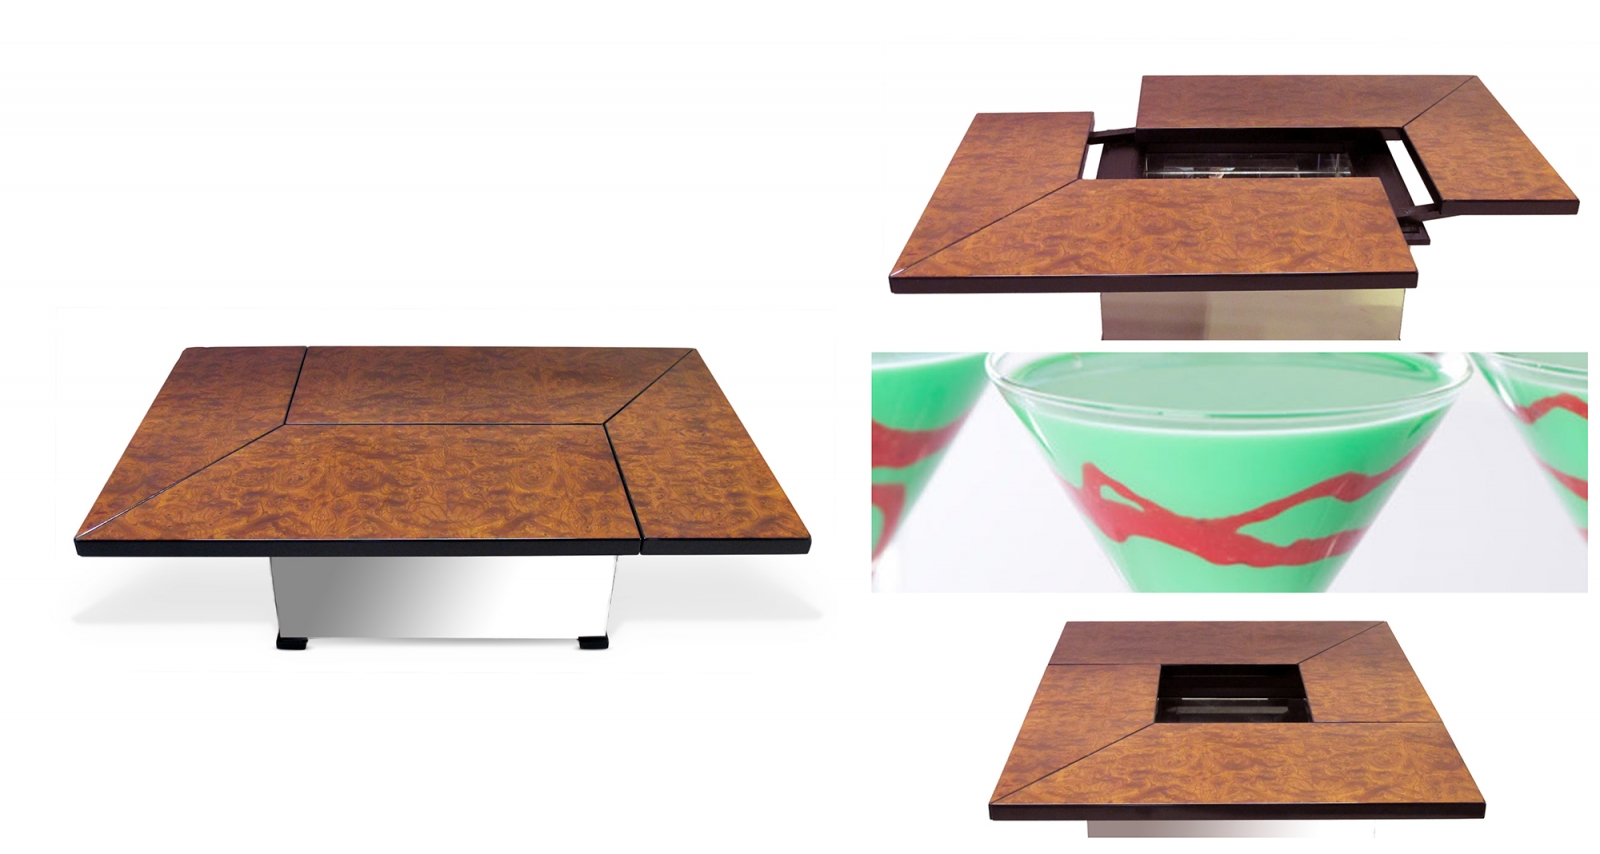 70's mad mod fun holiday entertaining- epoca metamorphic bar table and grasshoppers